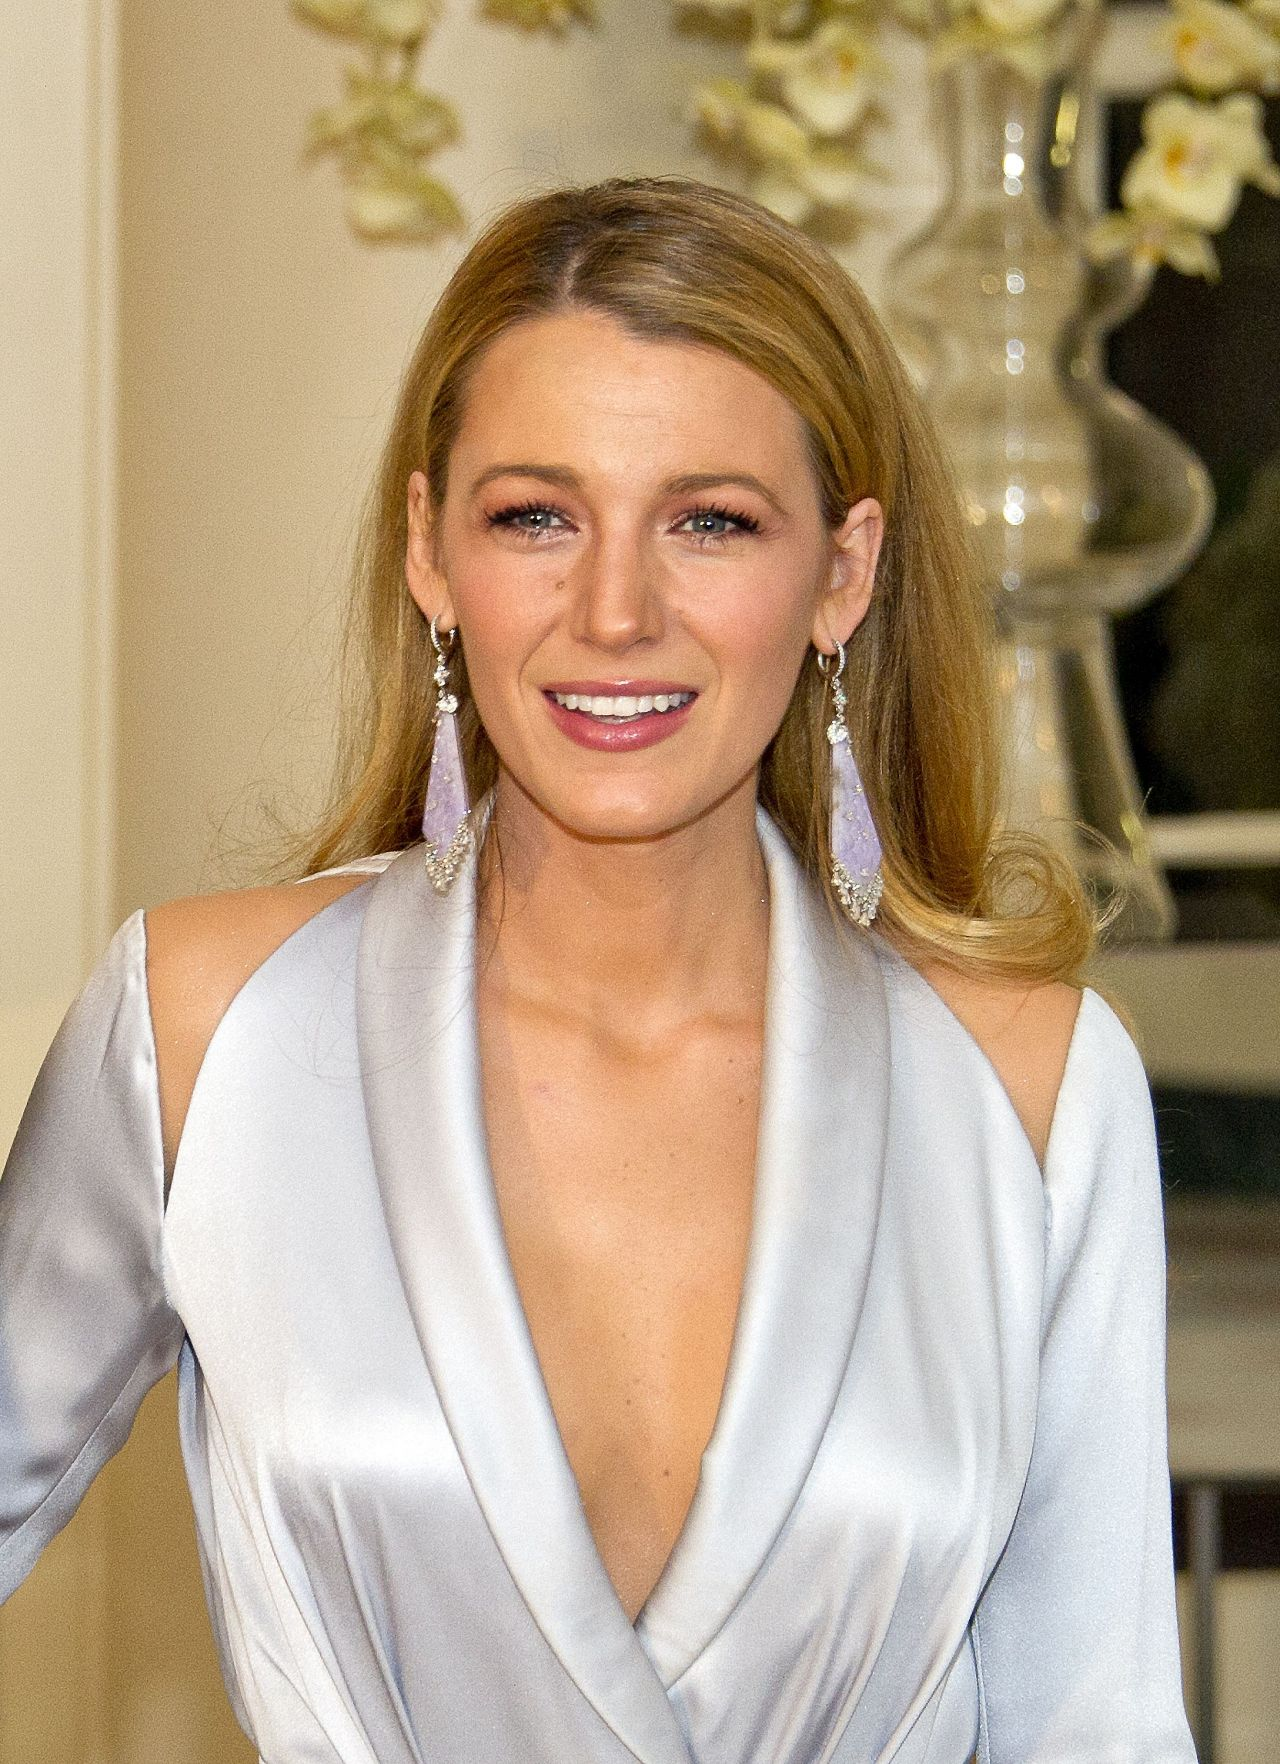 Blake Lively Latest Photos Celebmafia